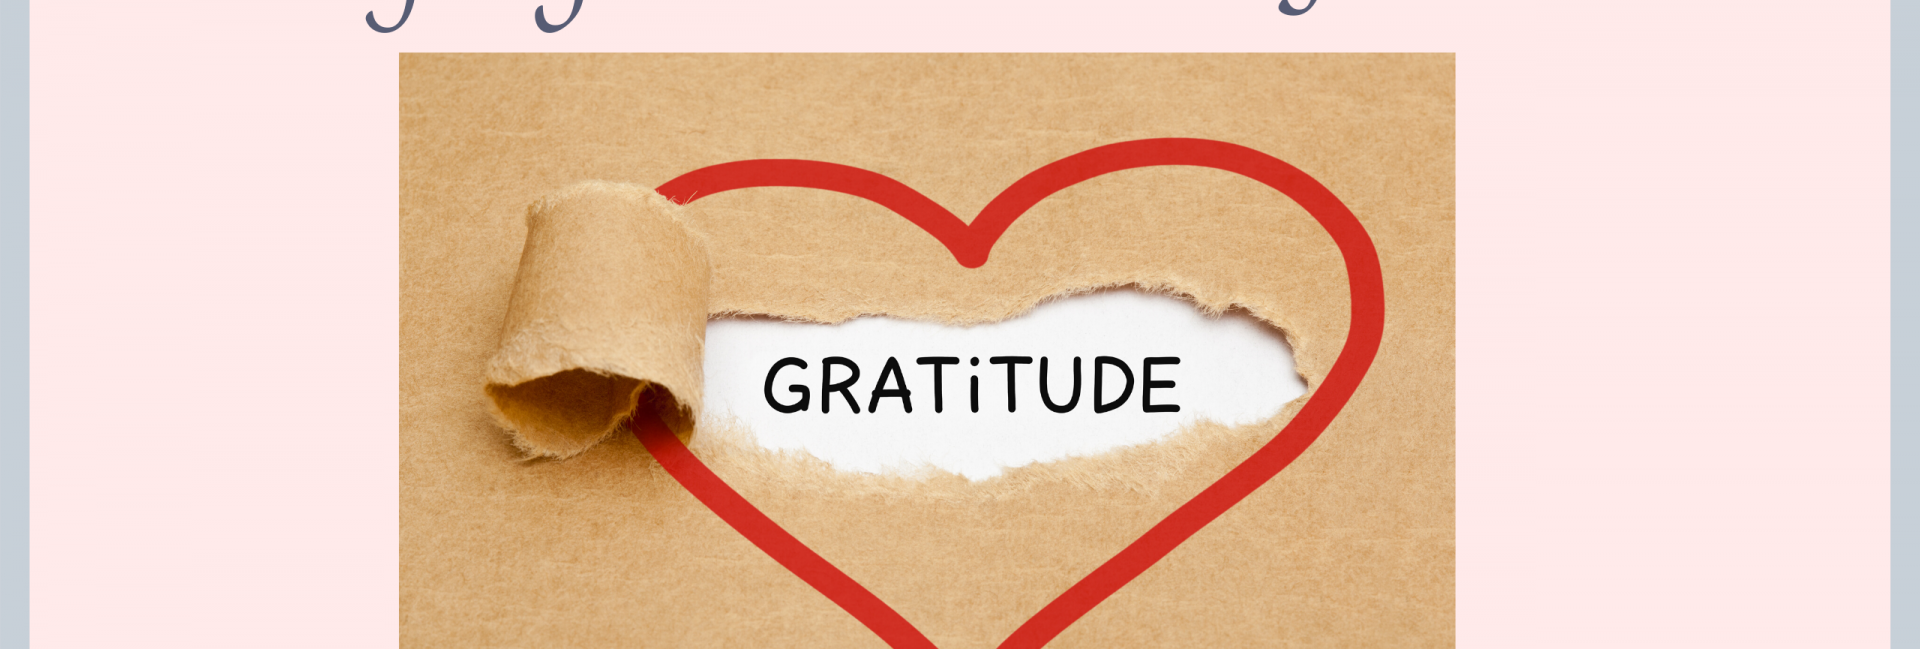 A red heart drawn onto brown paper with a piece ripped showing the word gratitude